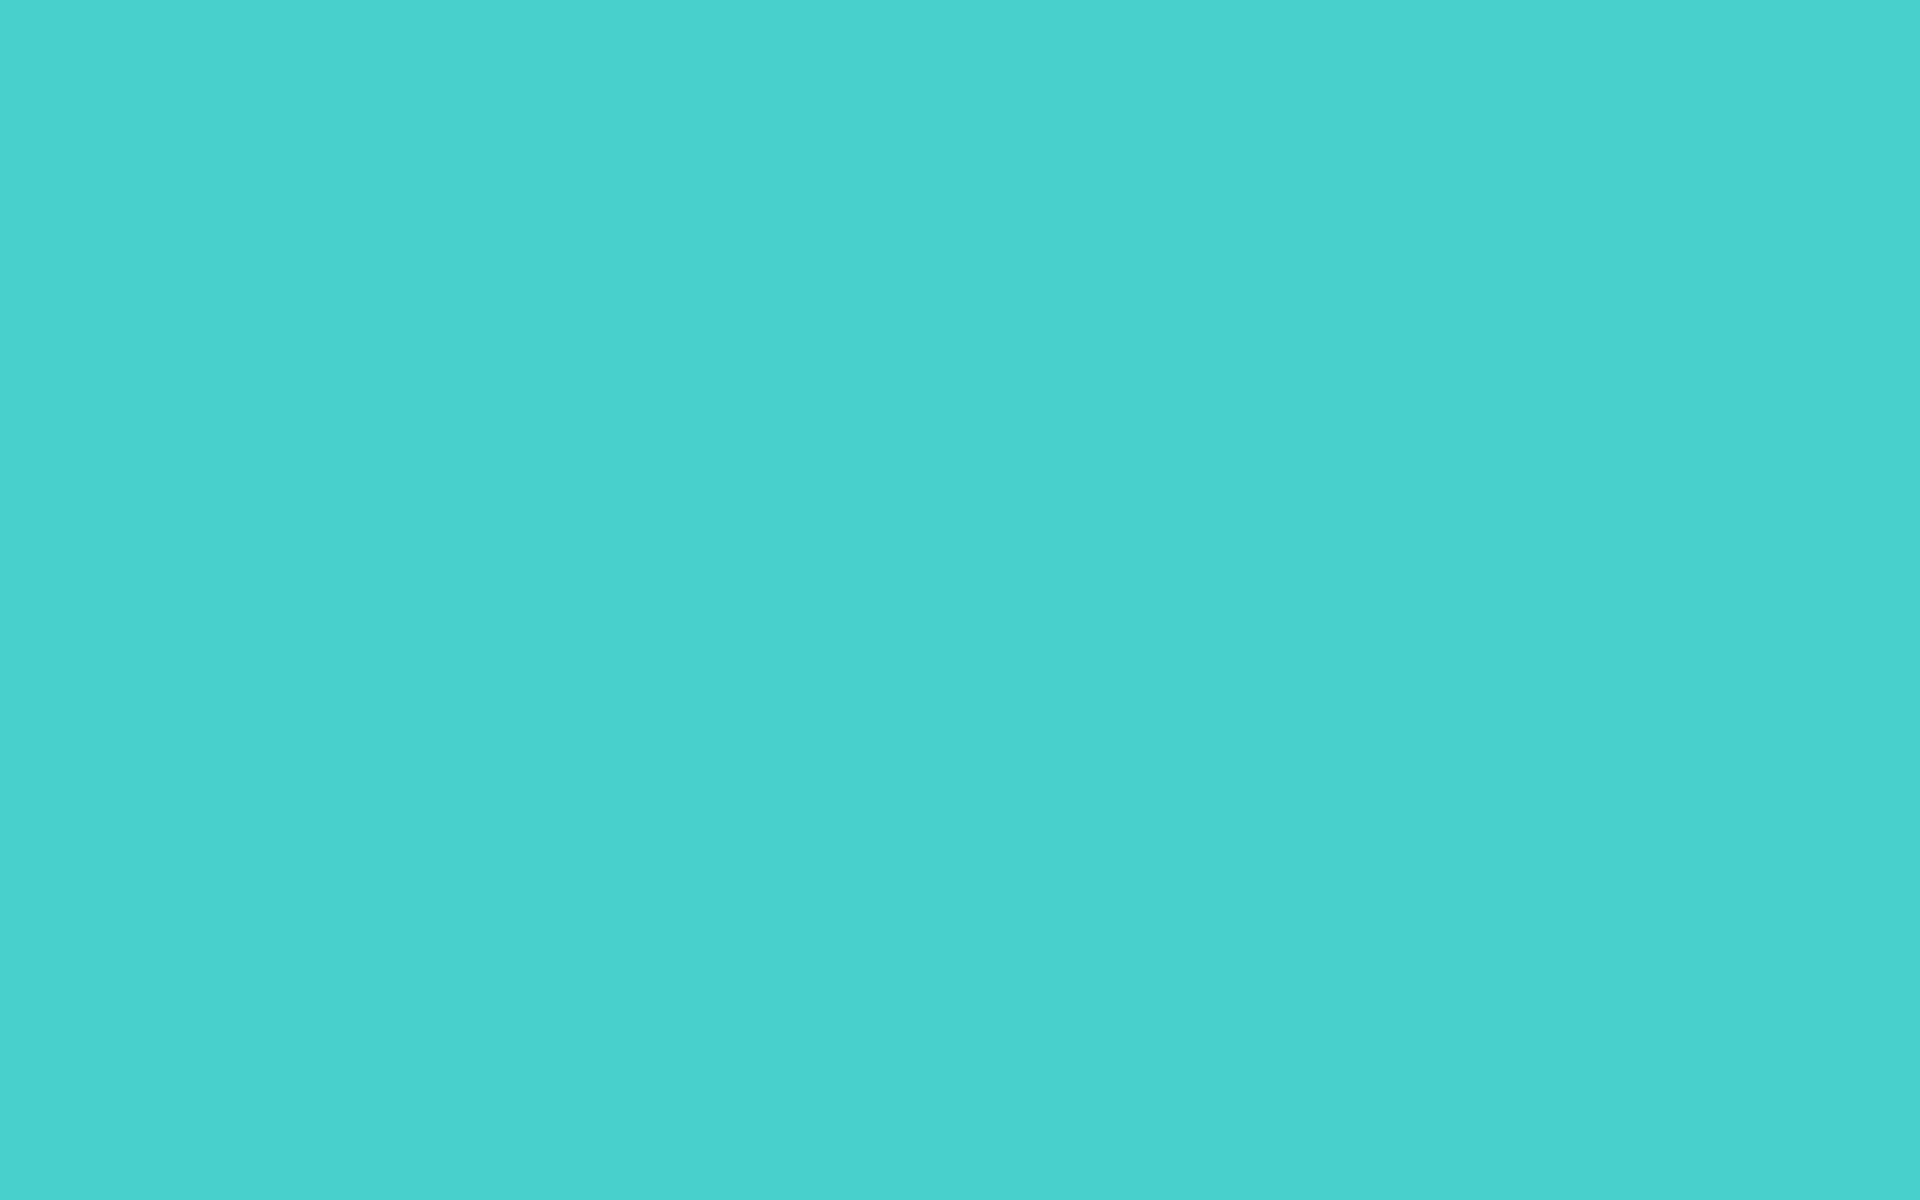 1920x1200 Medium Turquoise Solid Color Background